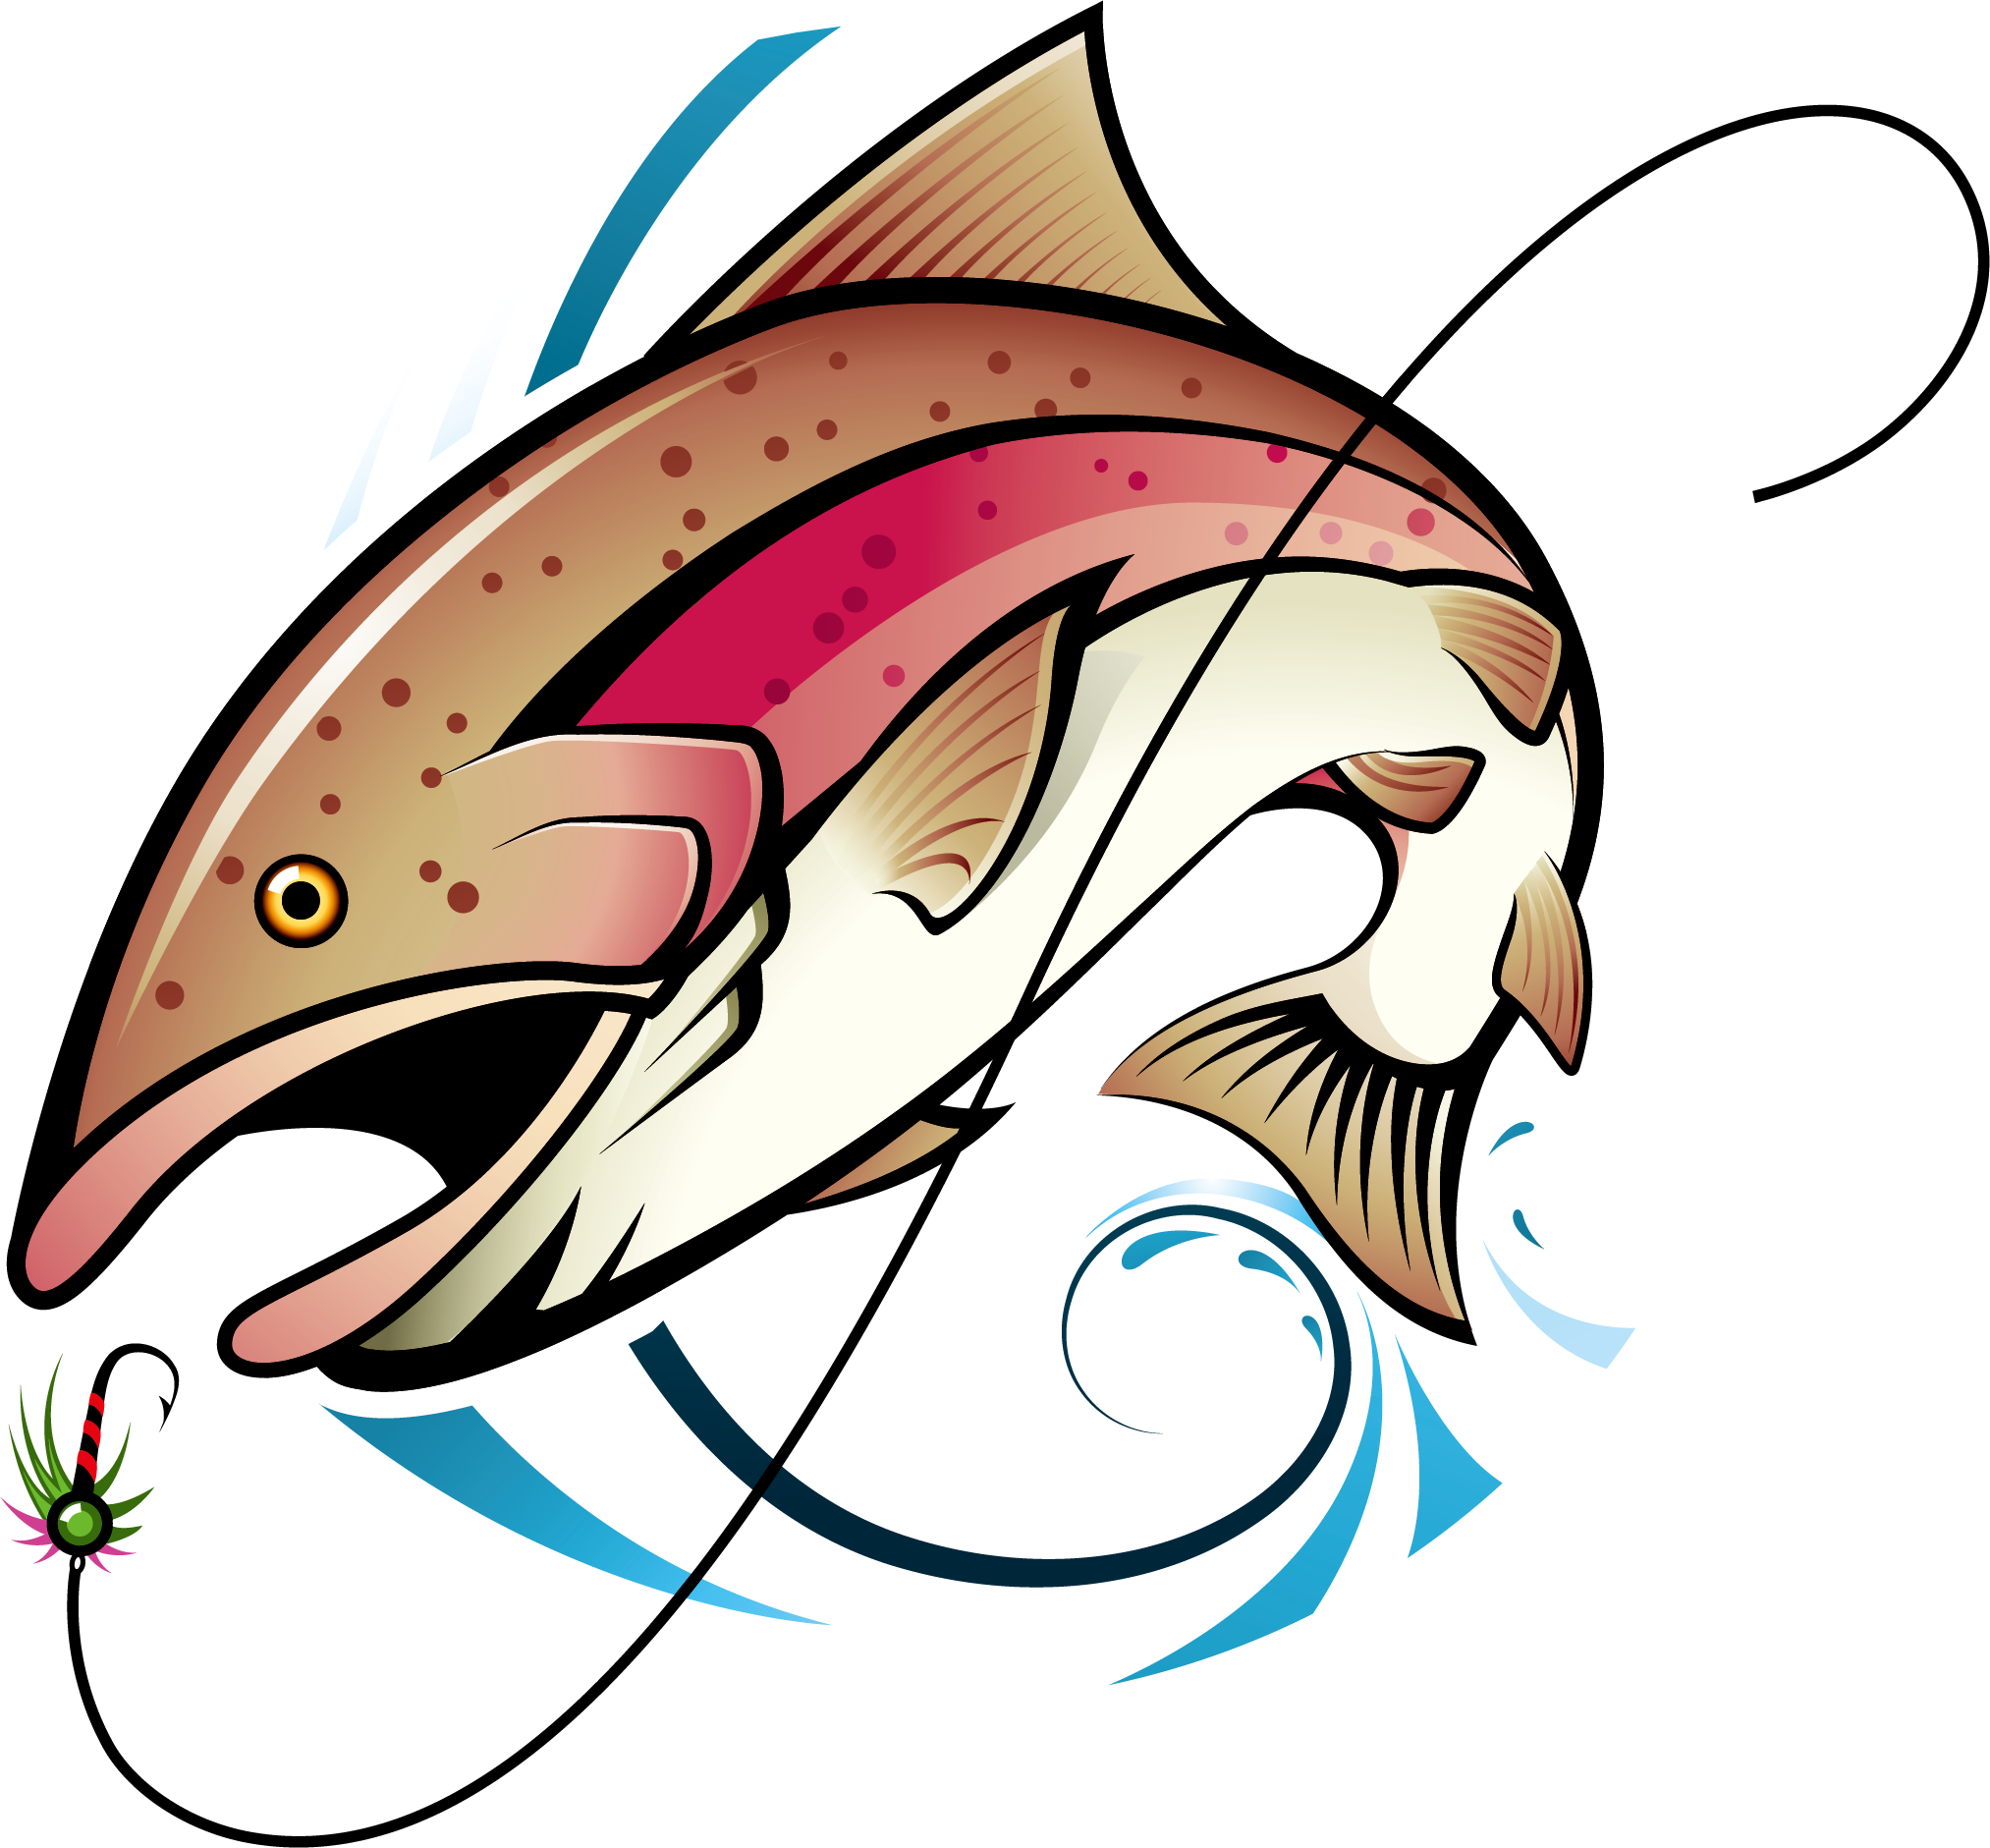 Dolphin clipart comic. Fly fishing rod clip